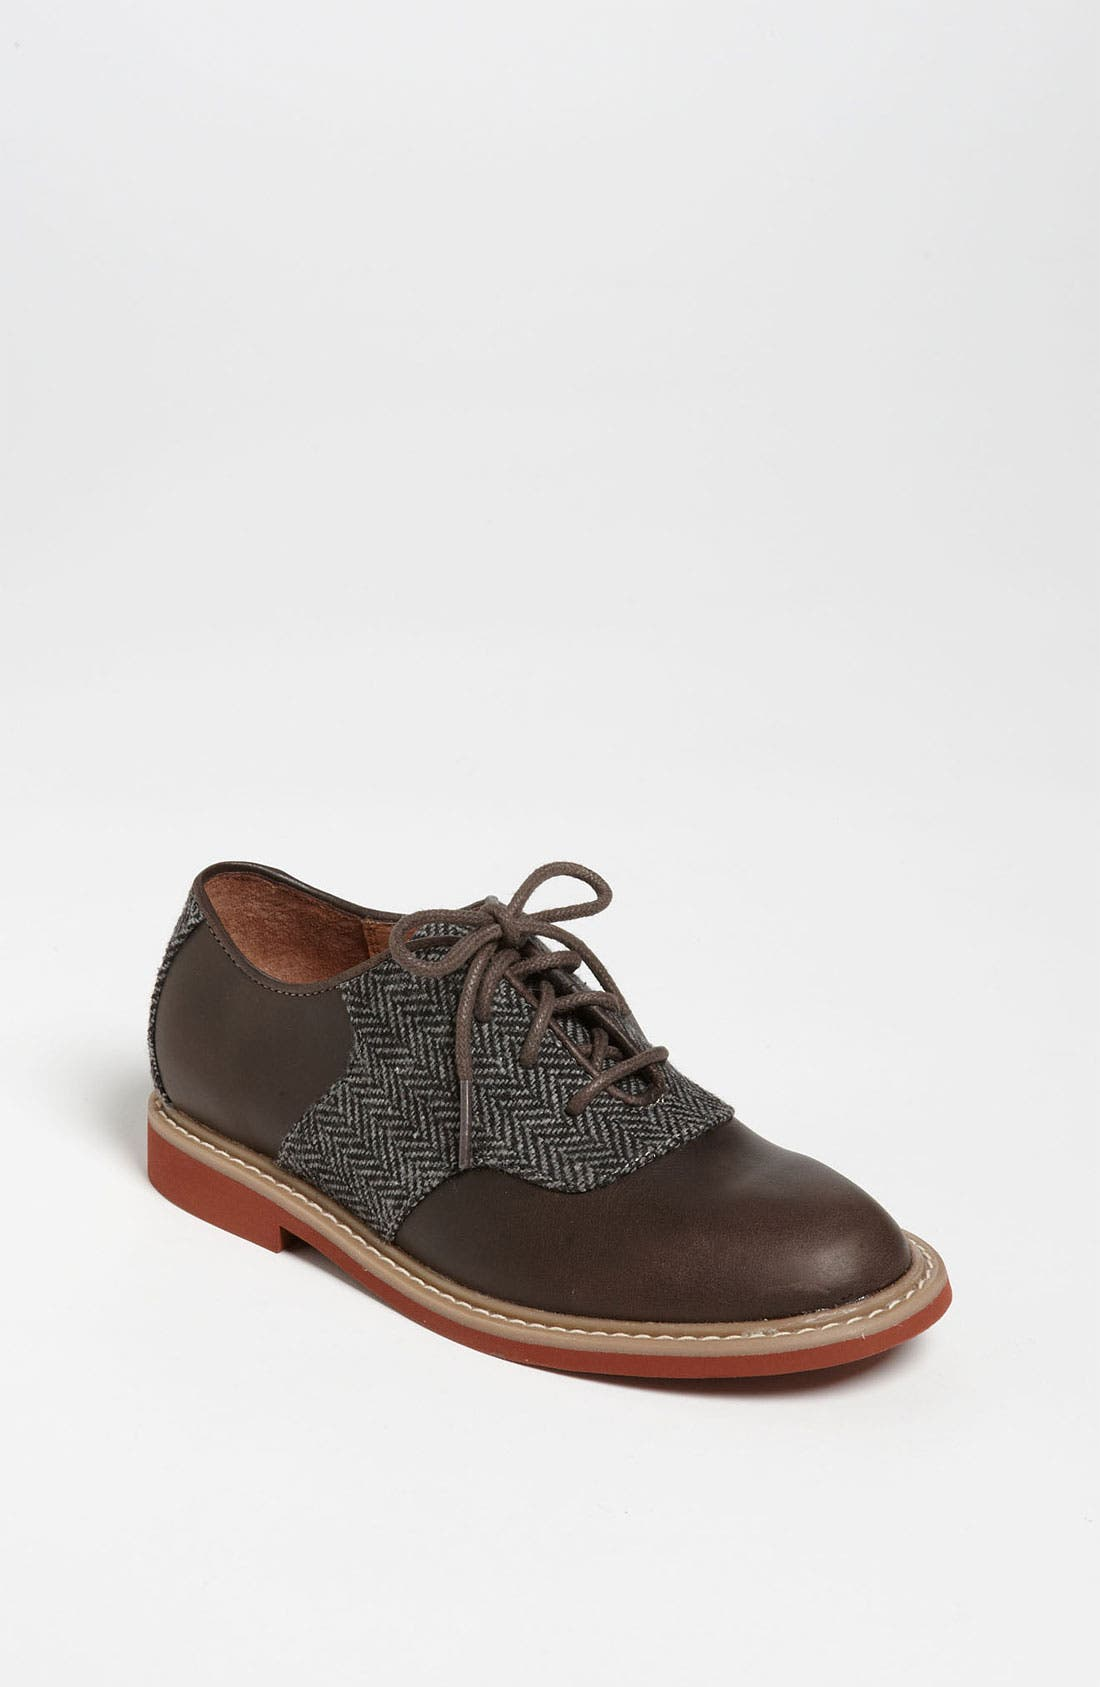 Main Image - Cole Haan 'Air Franklin' Saddle Shoes (Toddler, Little Kid & Big Kid)